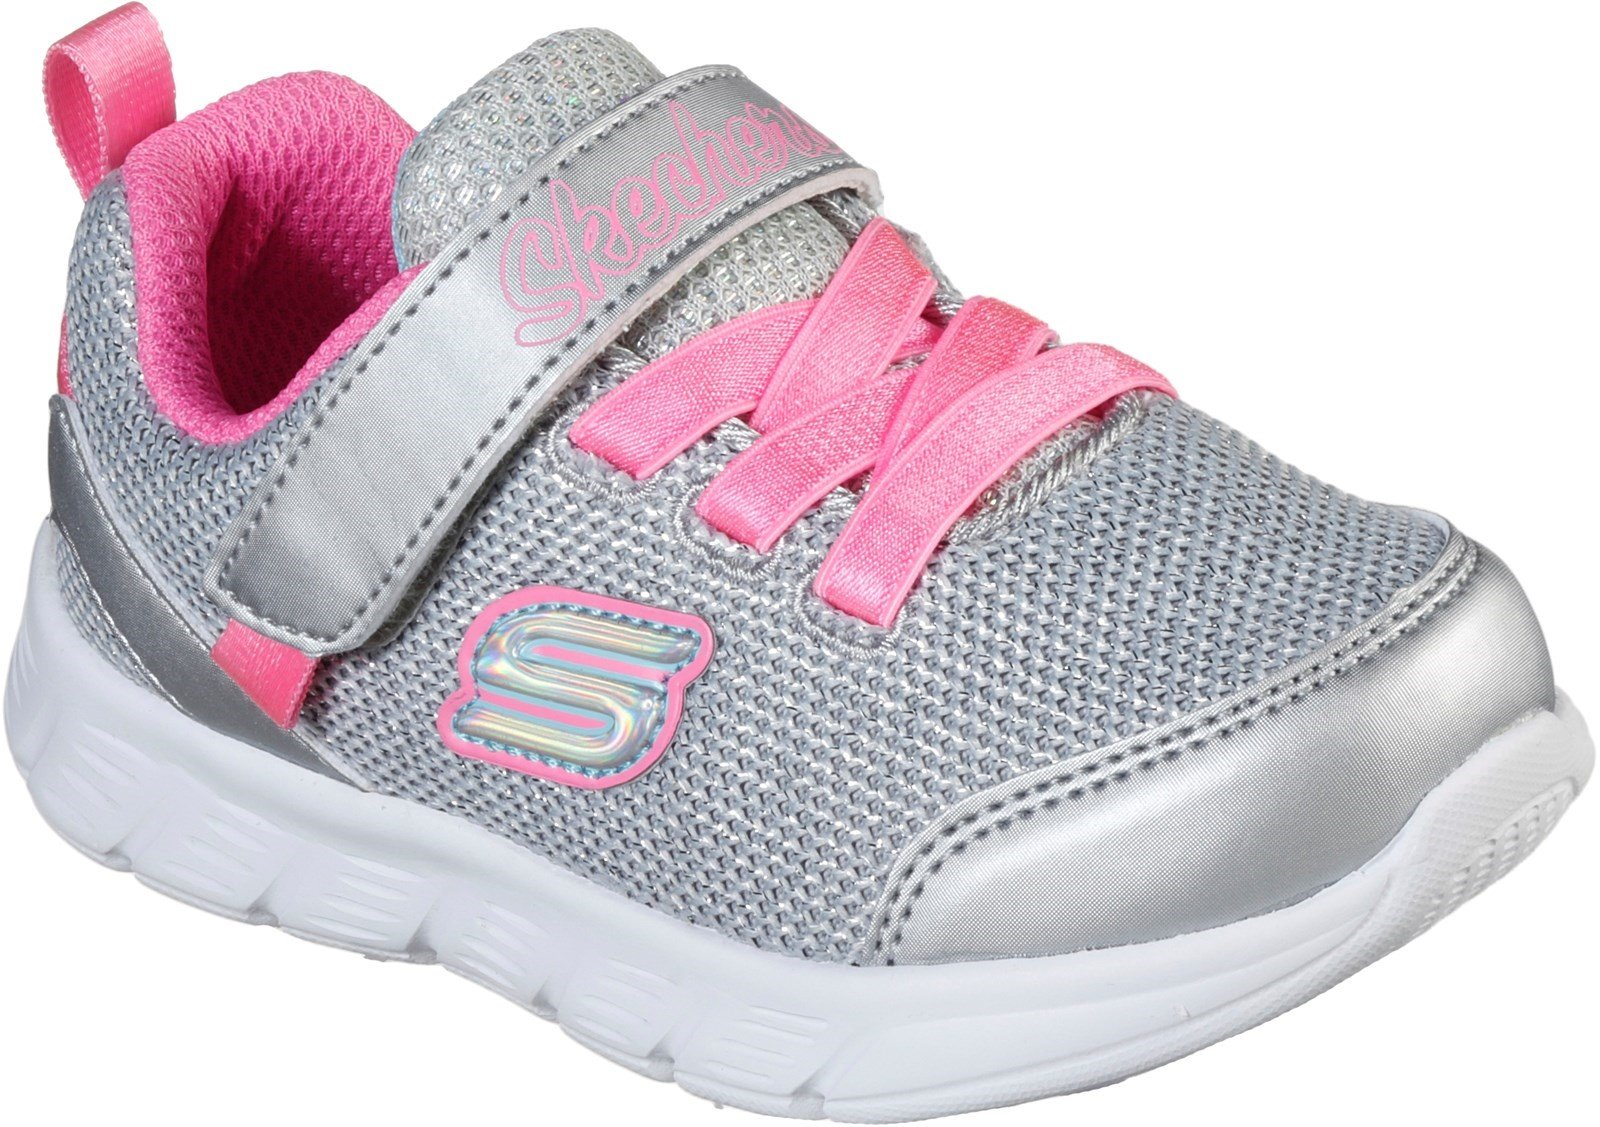 Skechers Kid's Comfy Flex Sports Trainer Various Colours 31139 - Silver/Hot Pink 4